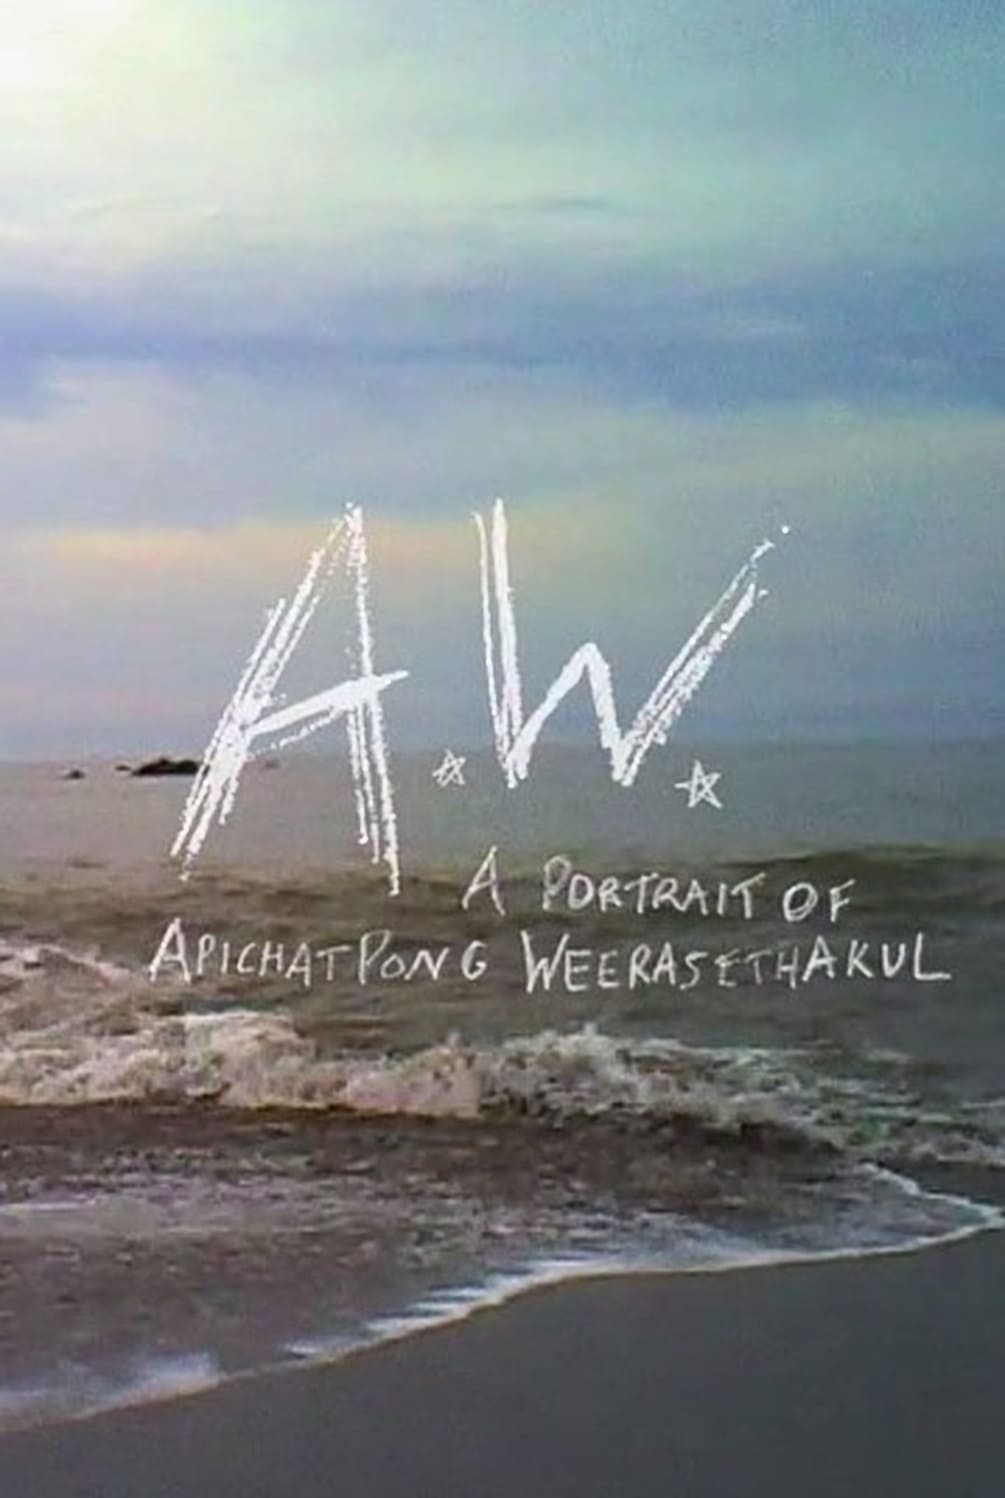 A.W. A Portrait of Apichatpong Weerasethakul